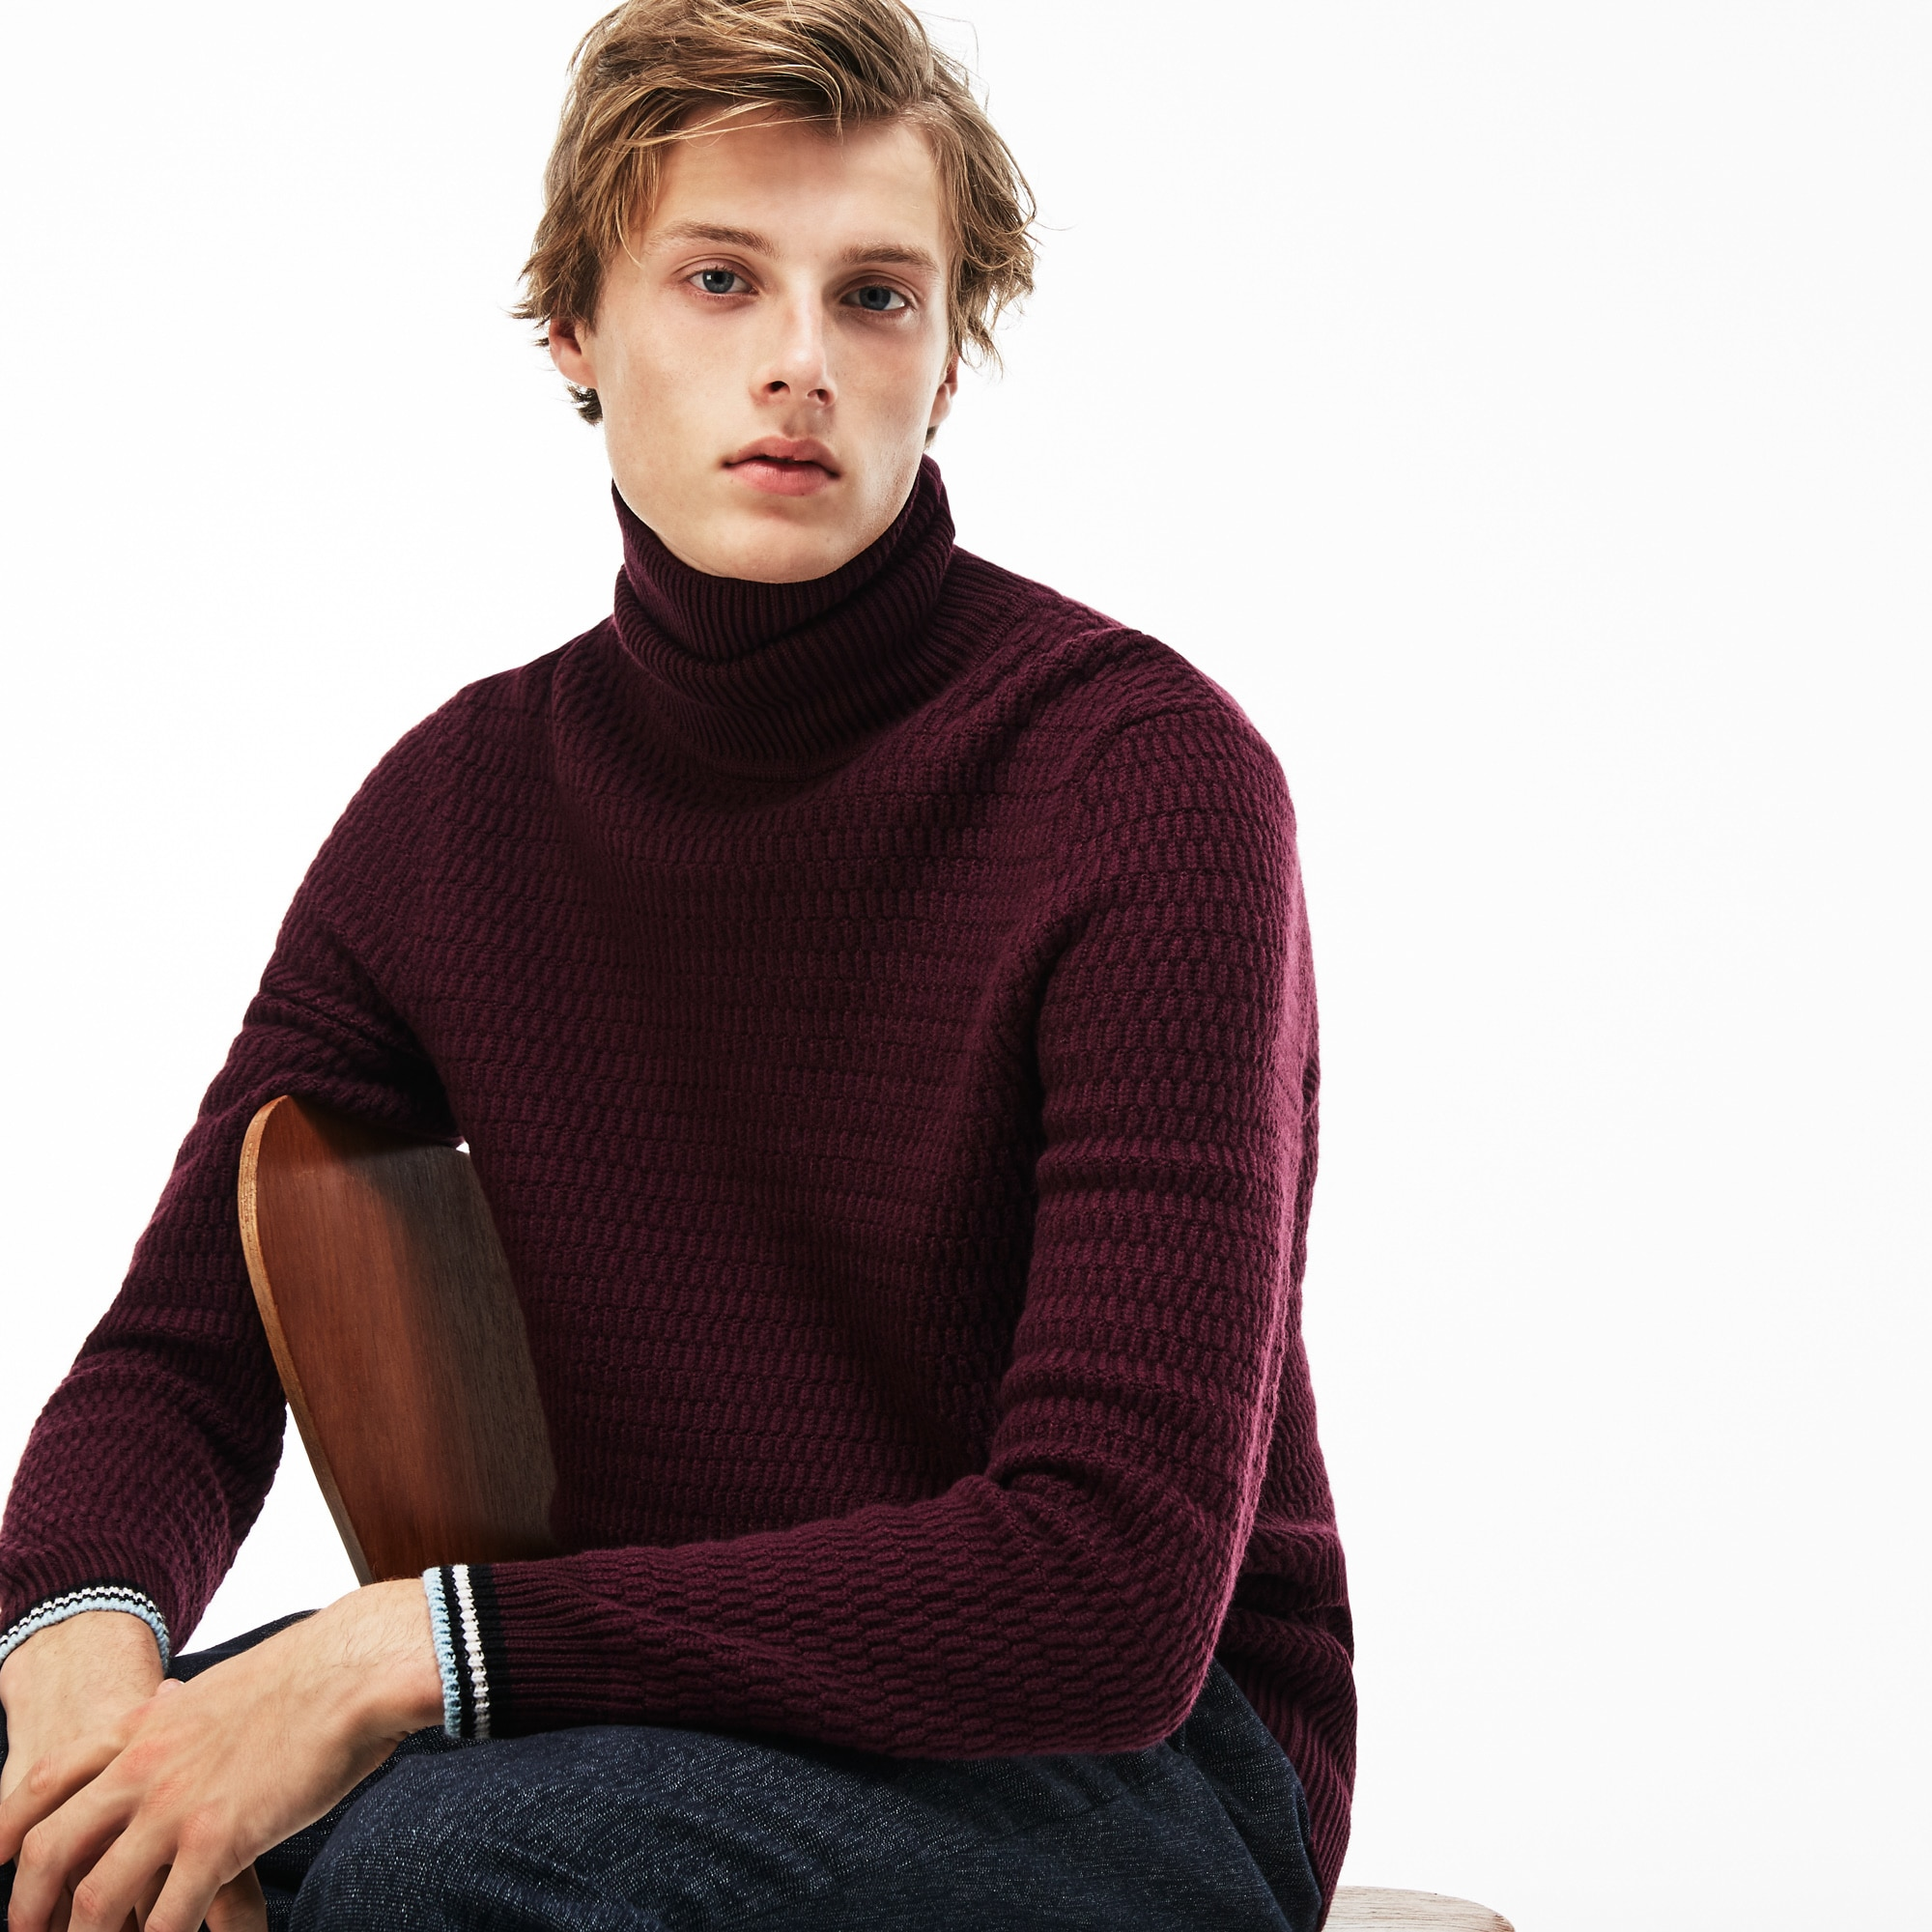 Men's Ribbed Stand-Up Collar Sweater With Striped Accents